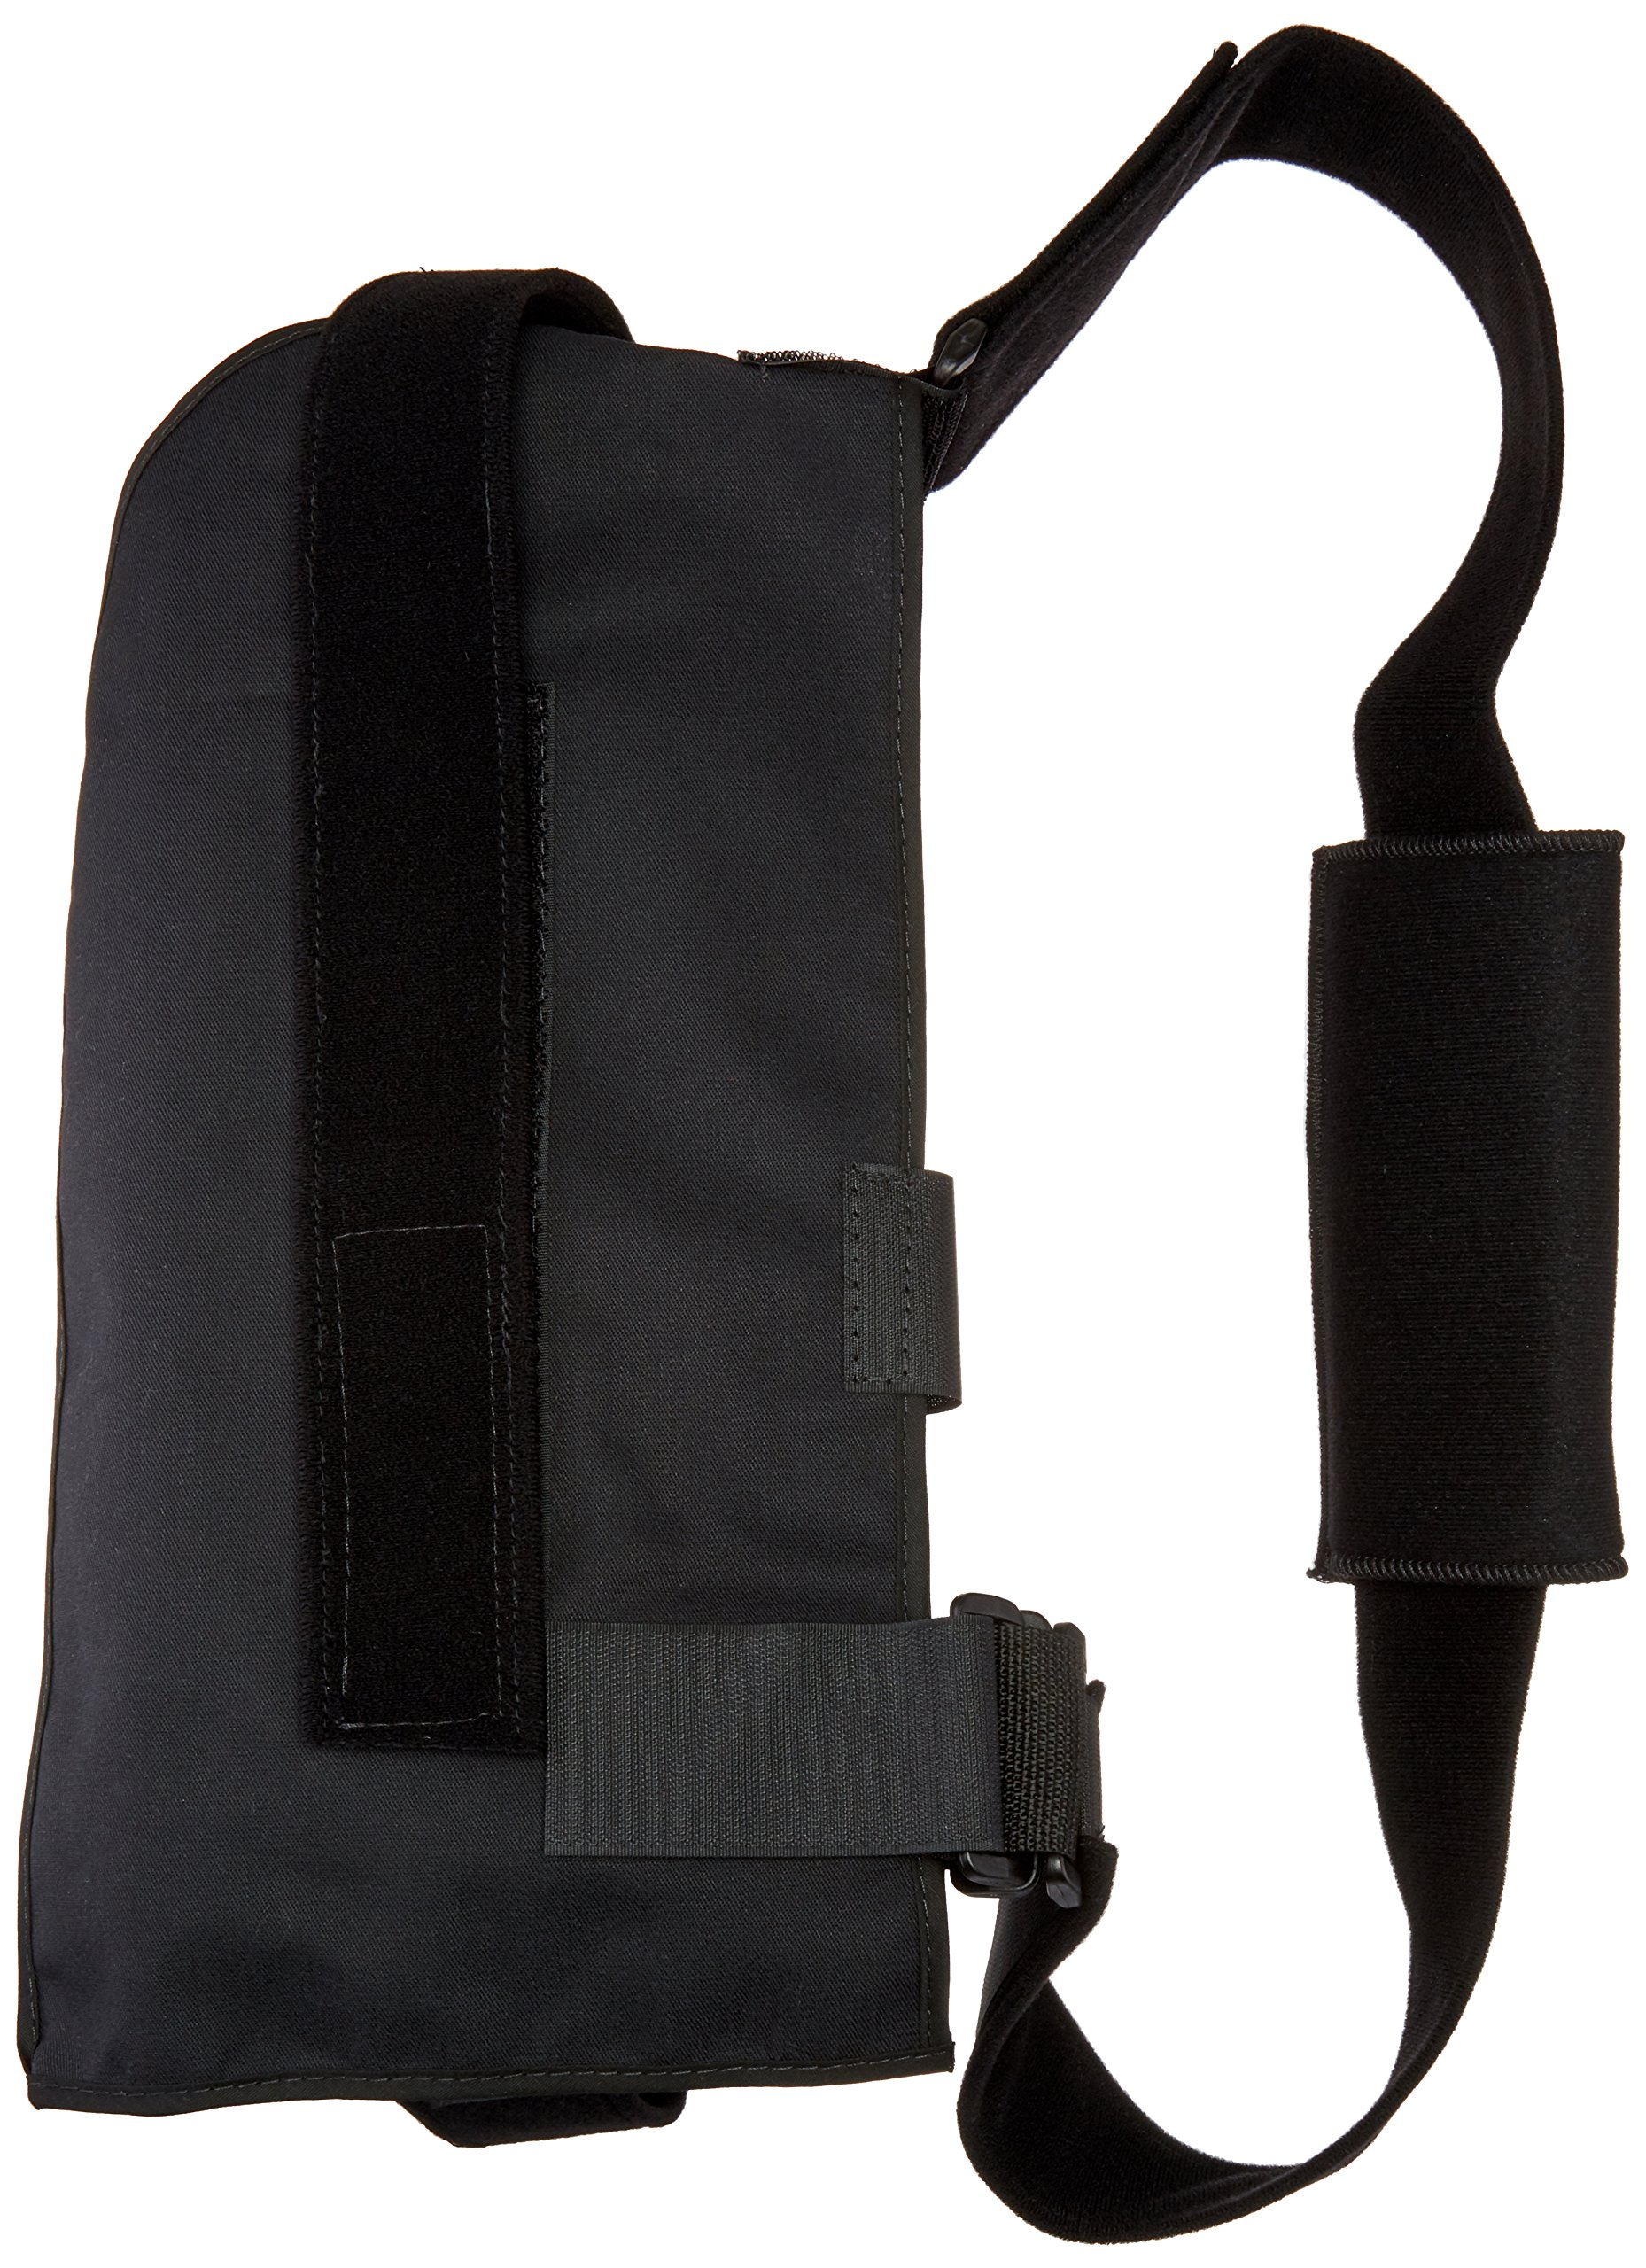 Rolyan 73415 25 Abducton Sling, Medium, Fits Left or Right